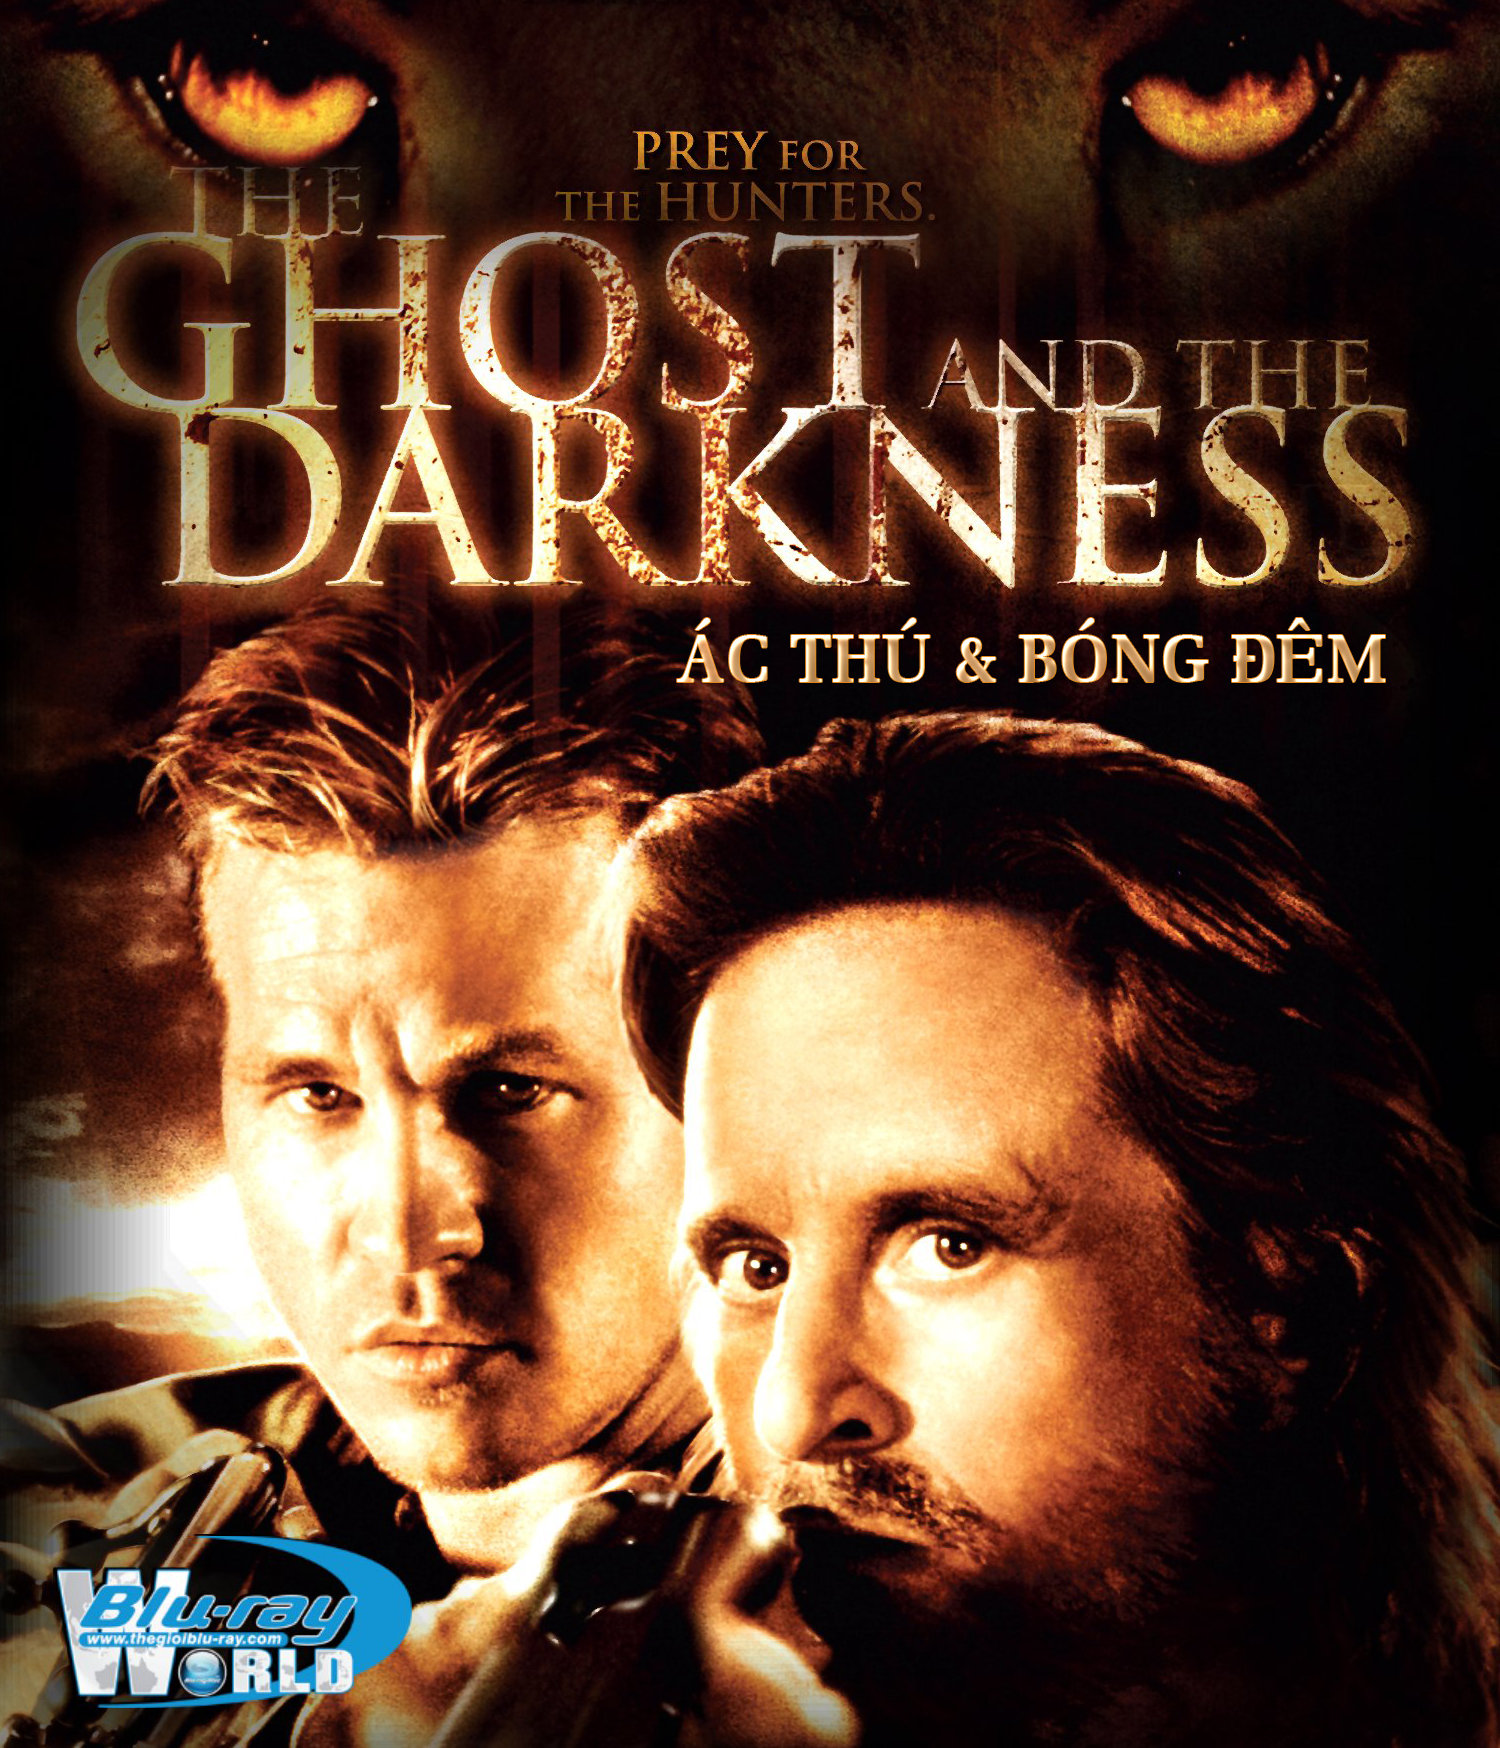 B1509. The Ghost and the Darkness - ÁC THÚ & BÓNG ĐÊM 2D 25G (DTS-HD MA 5.1)